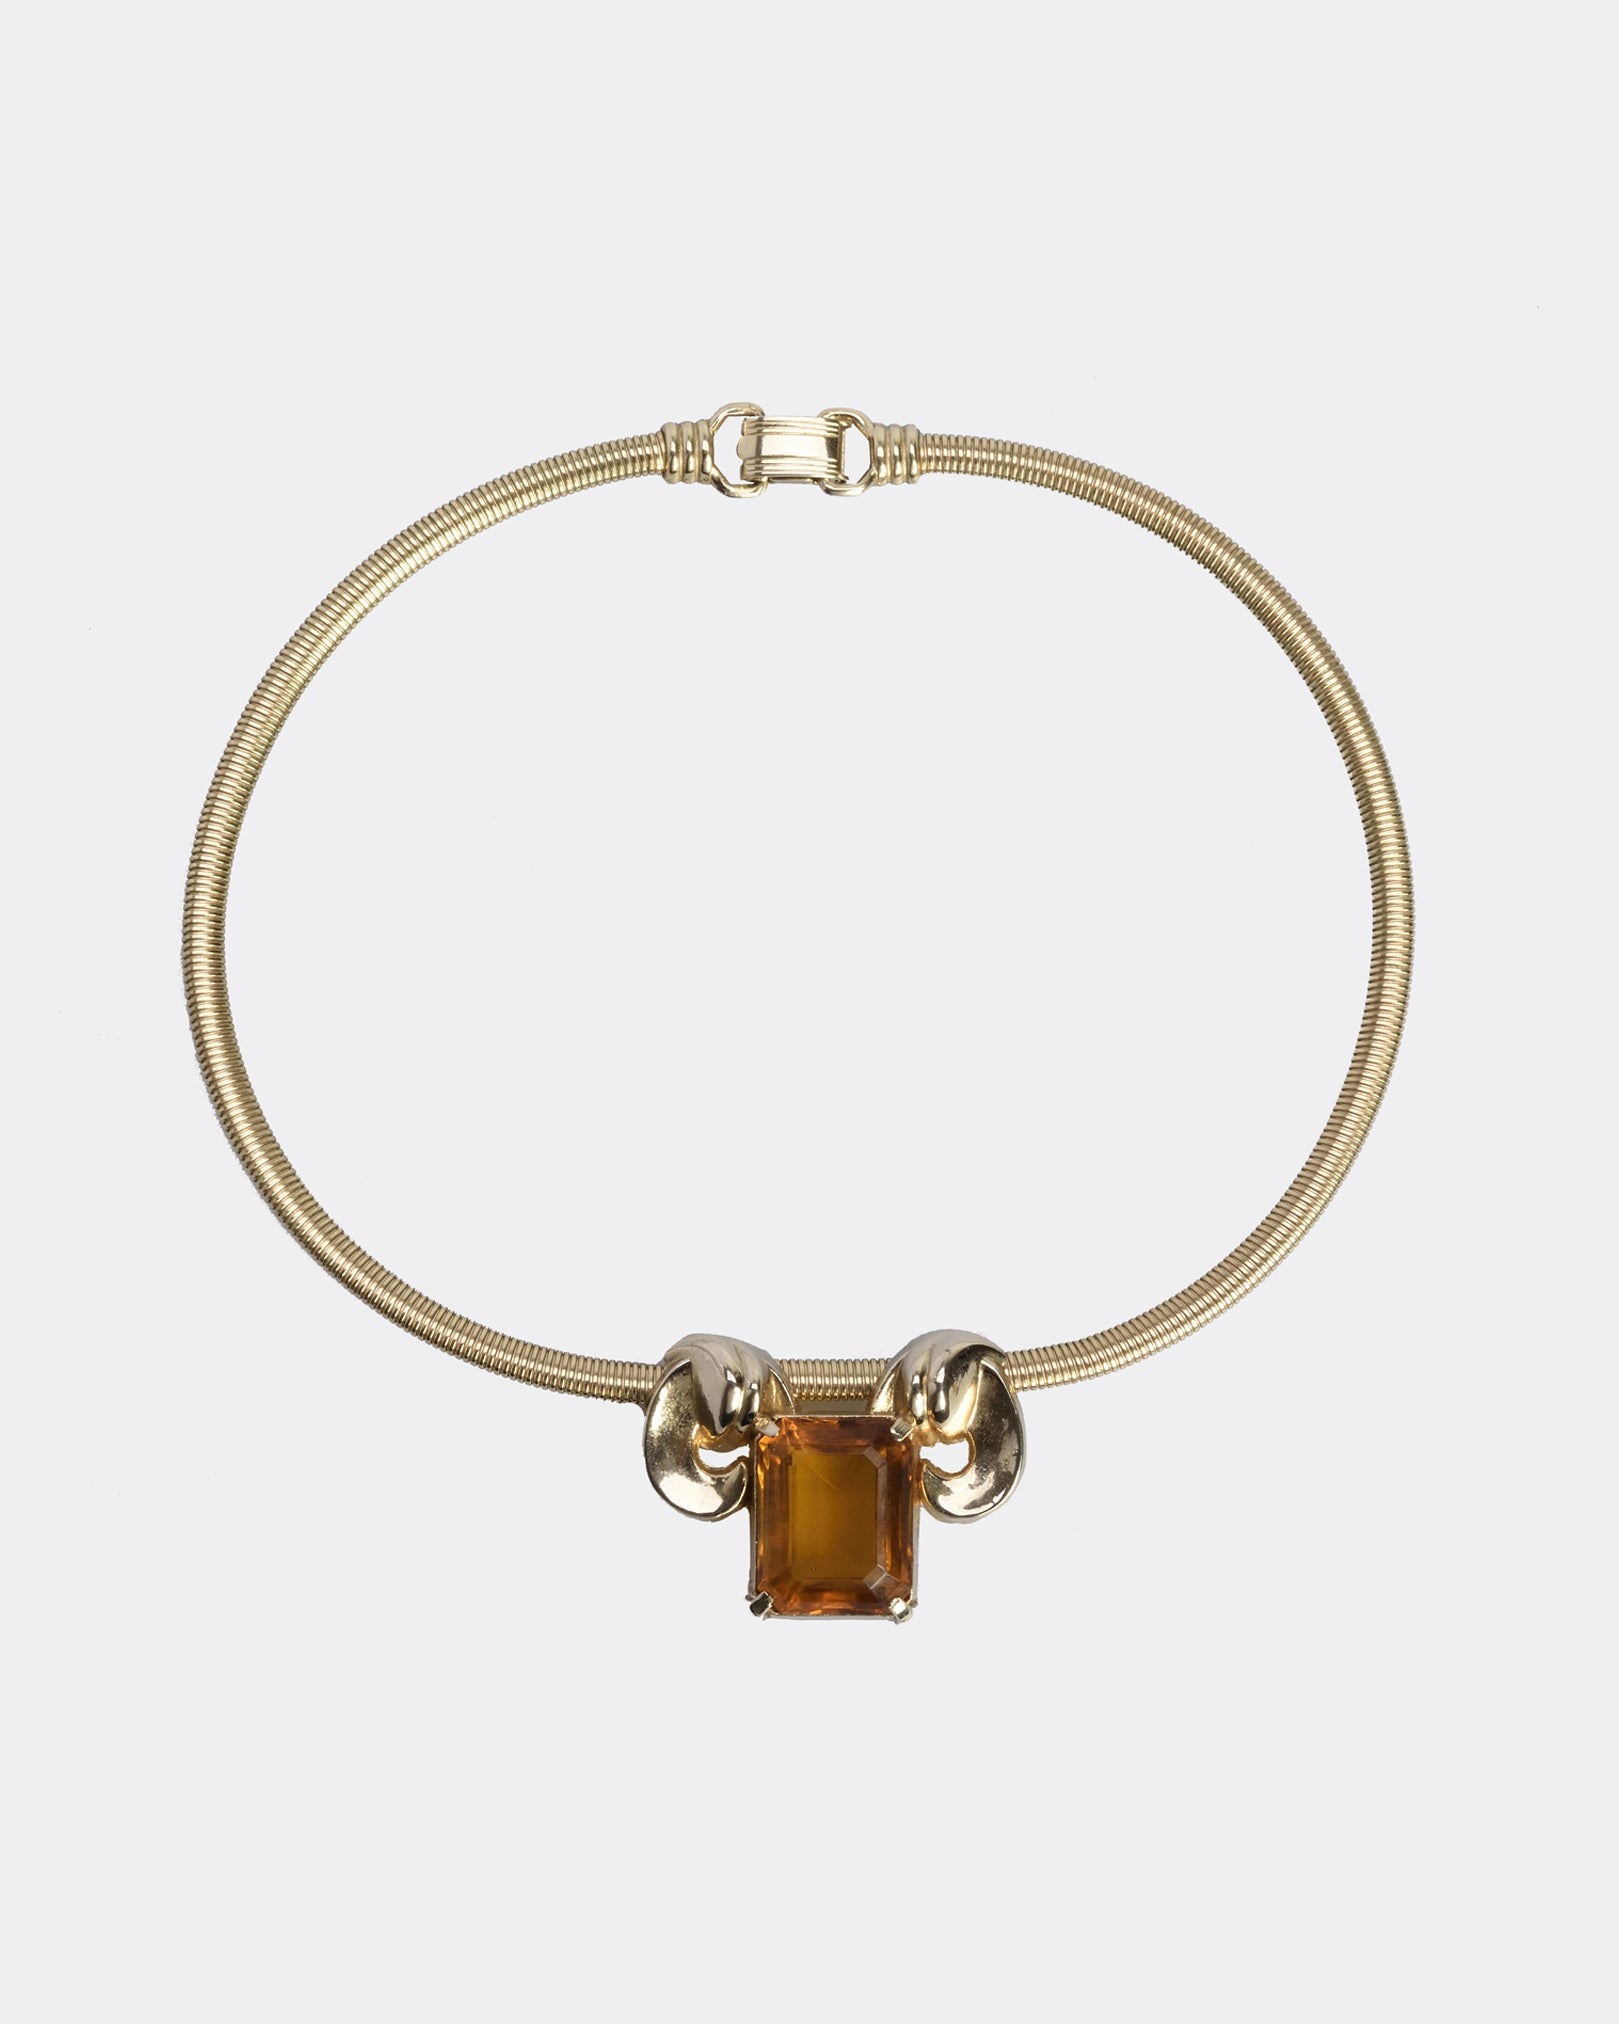 CORO BIJOUX Des Pat Pend Gold Aries Choker Necklace